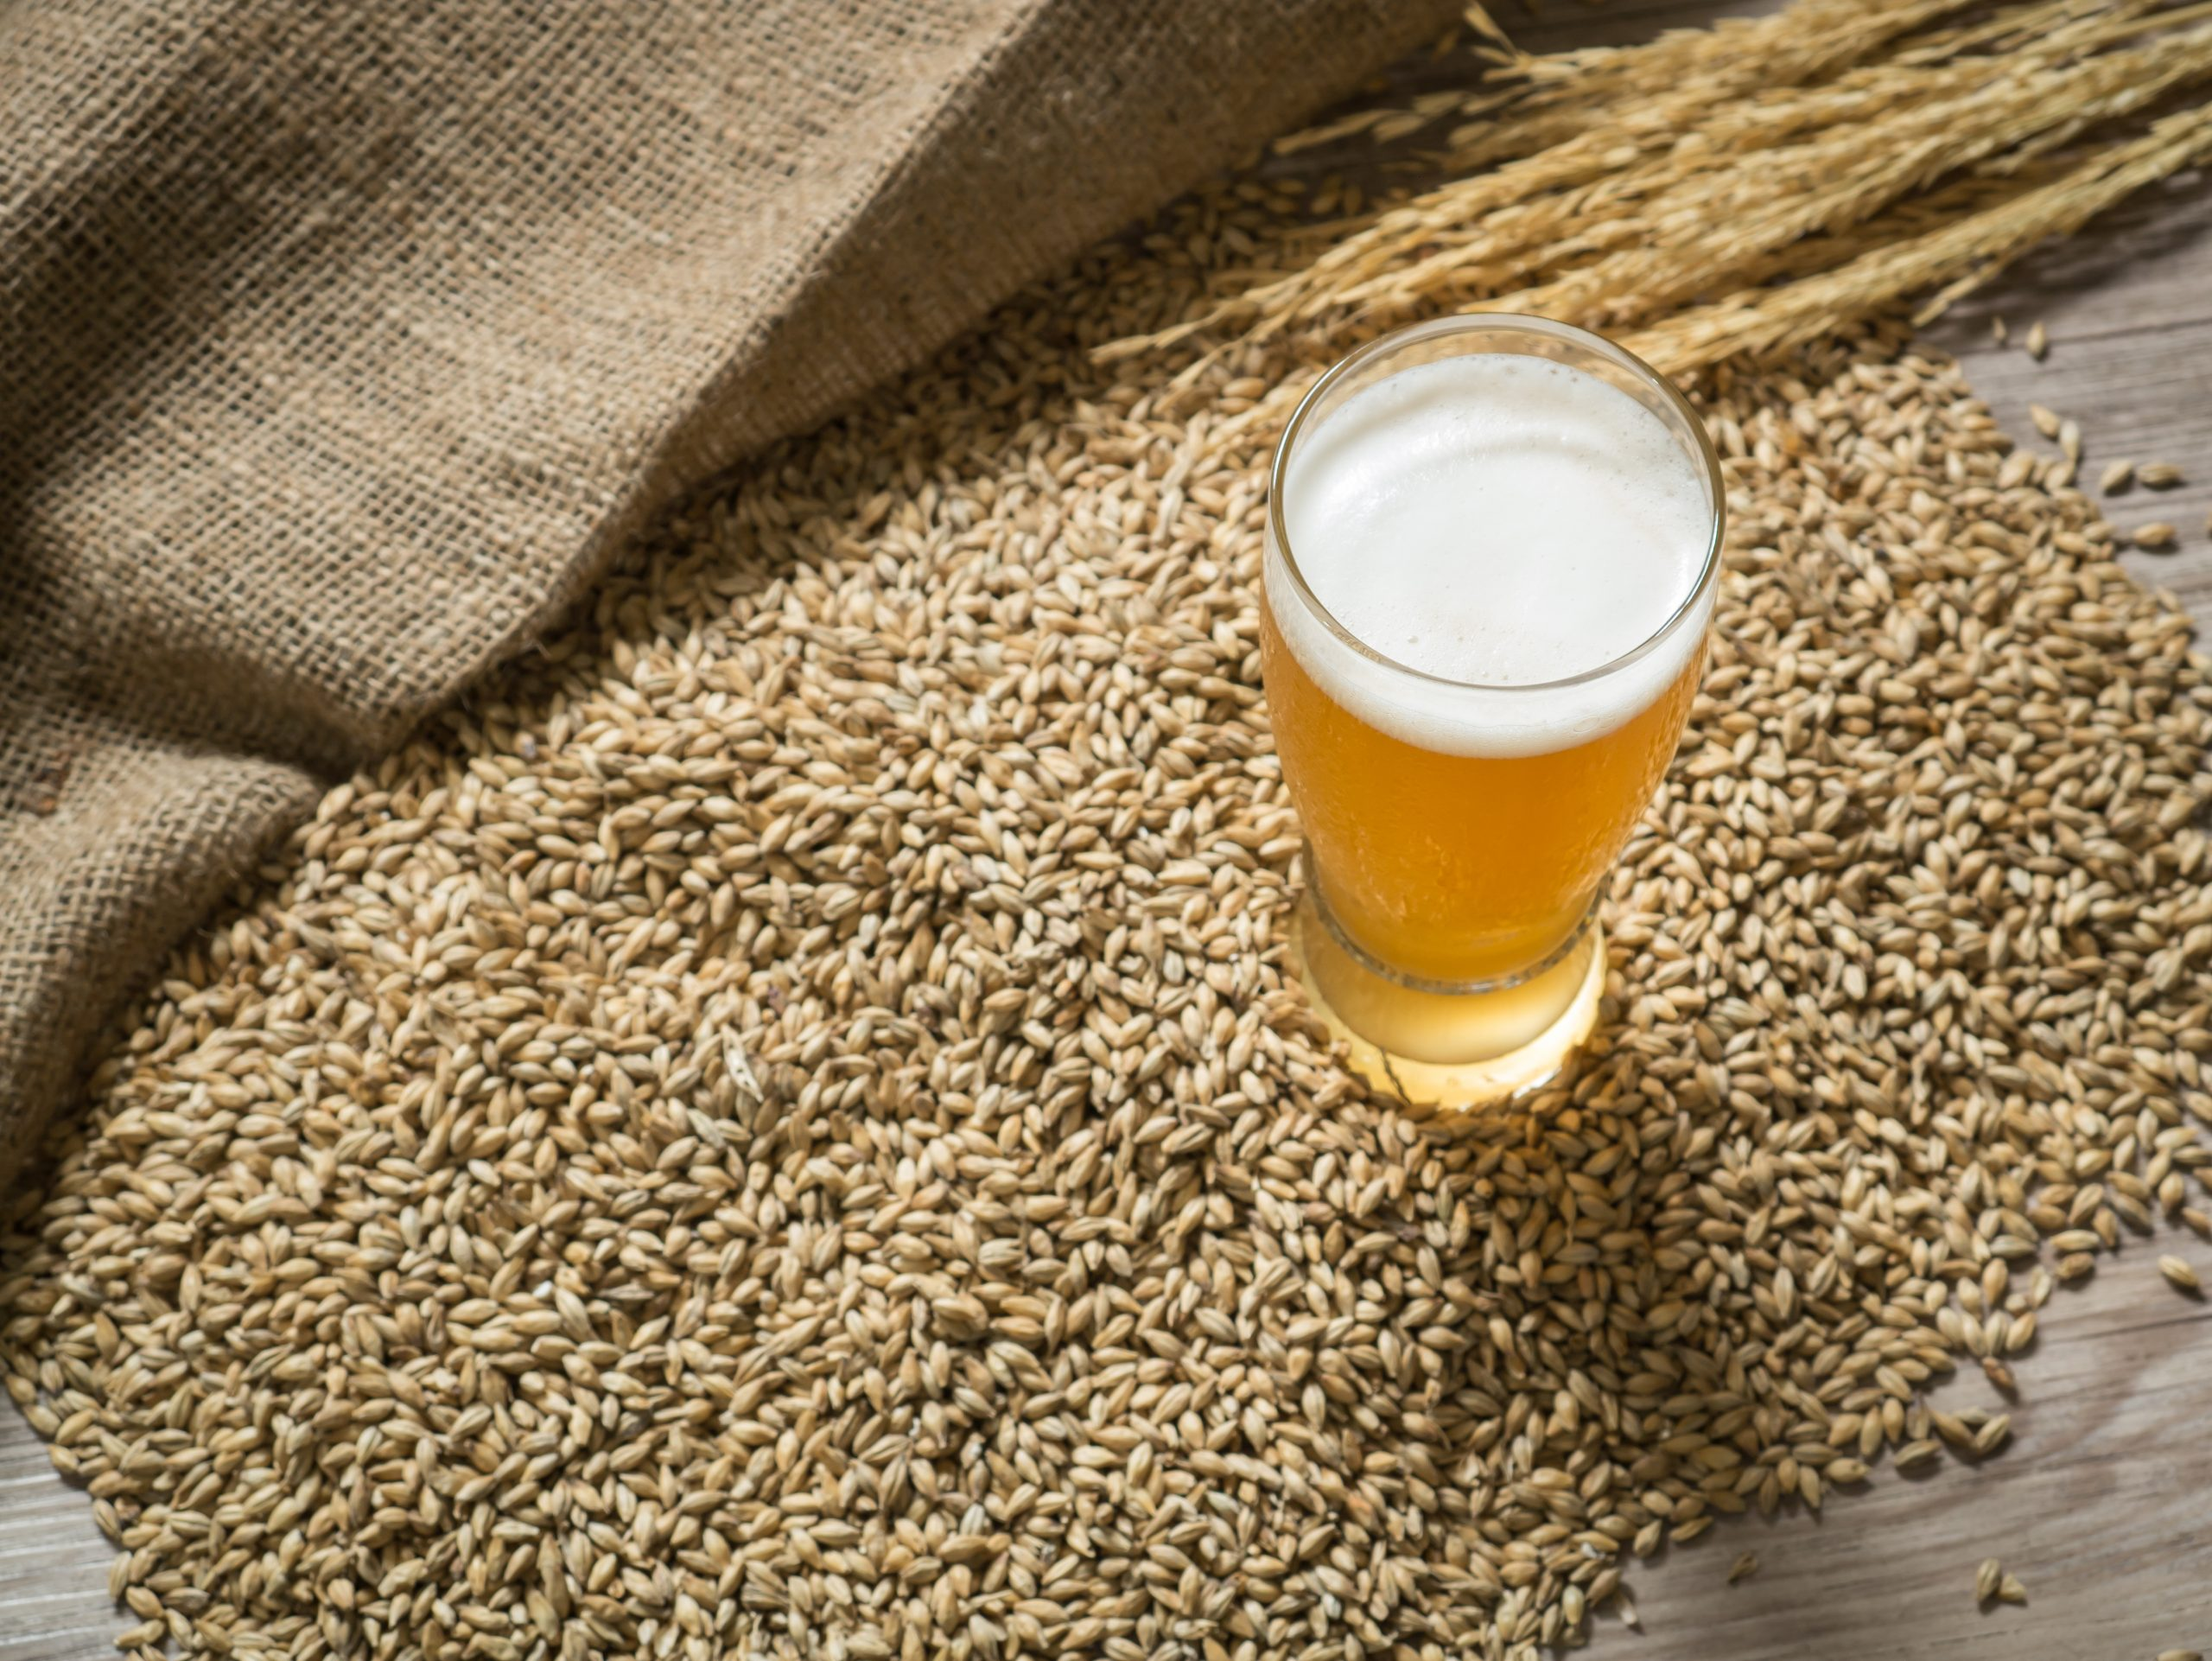 beer glass on grains